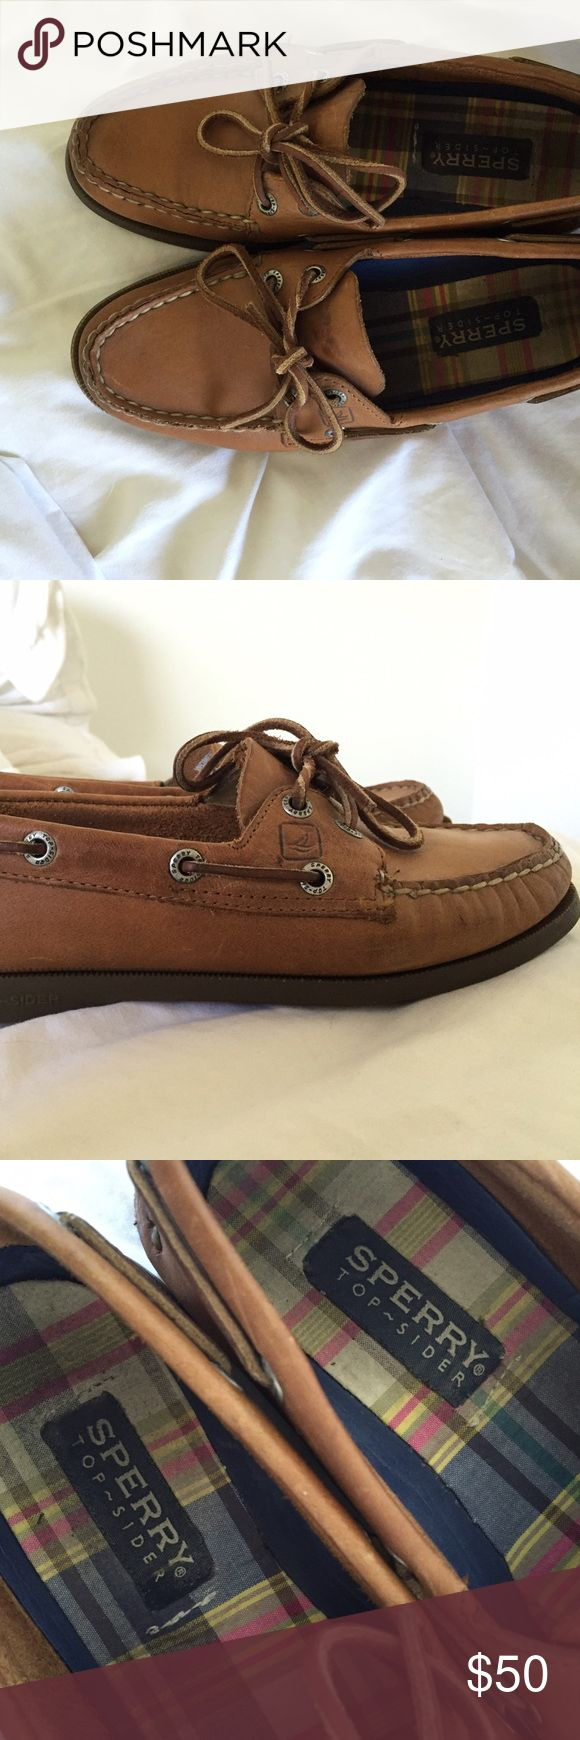 "Sperry Top-Sider women's leather boat shoes Brown-leather Sperry Top-Siders (""authentic original"") - slightly worn but in great condition (AKA almost broken in so you don't get blisters!) Adorable shoes. Sperrys are snug, as most leather shoes are, but the more you wear them, the more they'll stretch! Sperry Top-Sider Shoes"